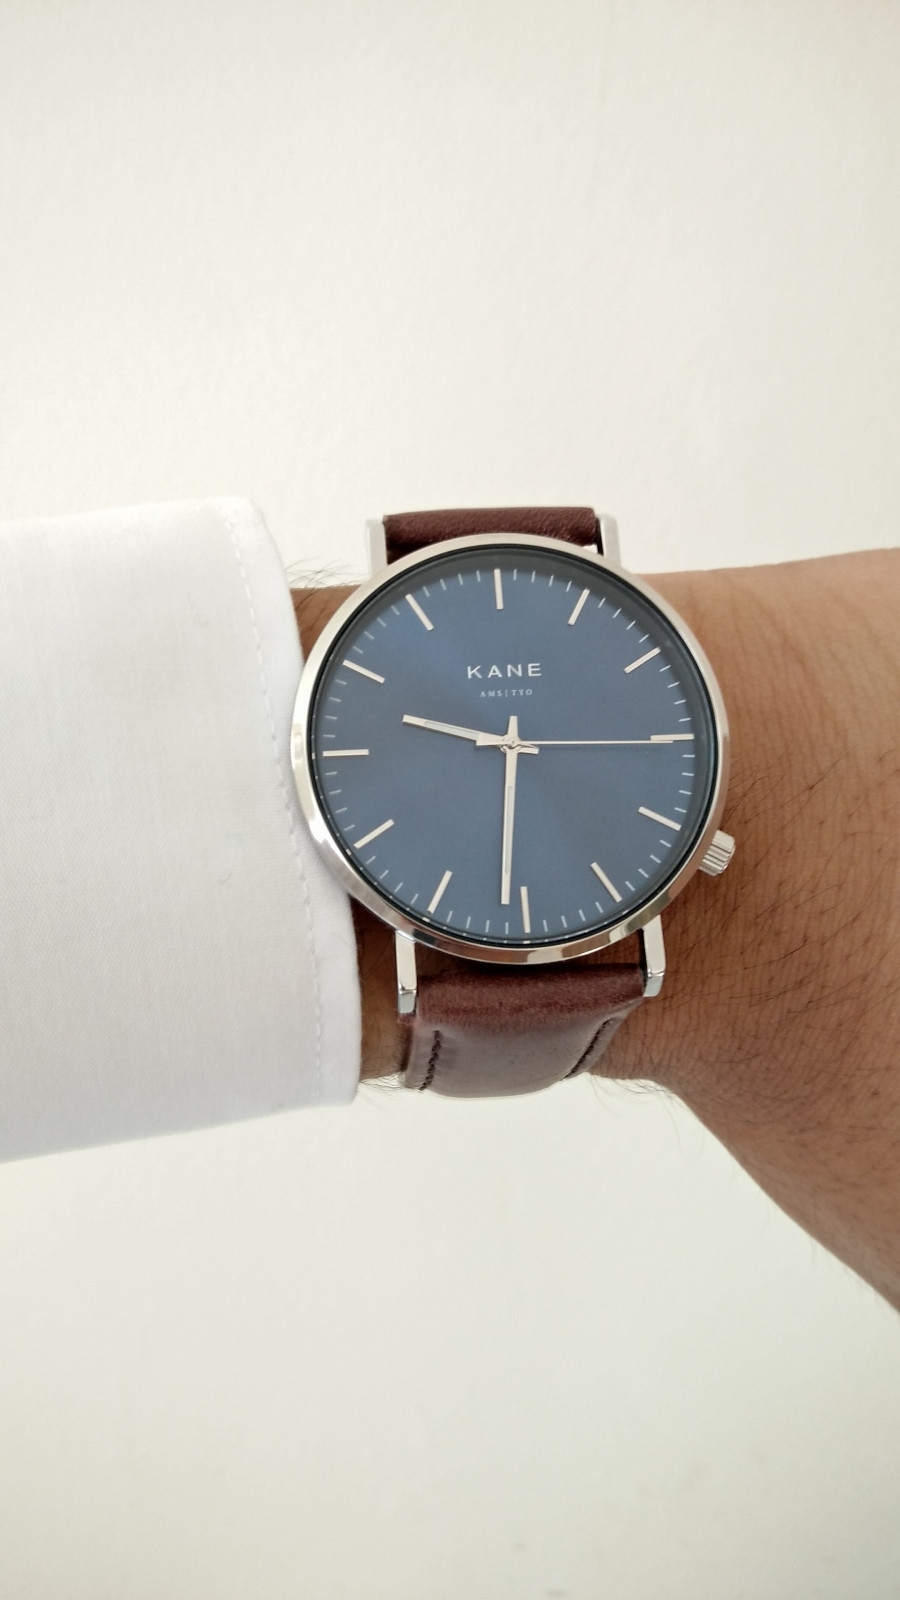 Kanewatches New Labels Only NewLabelsOnly Blog Blogger Watches Style Lifestyle London Netherlands Fashion Accessories Rose Rosegold Quality Craftmanship